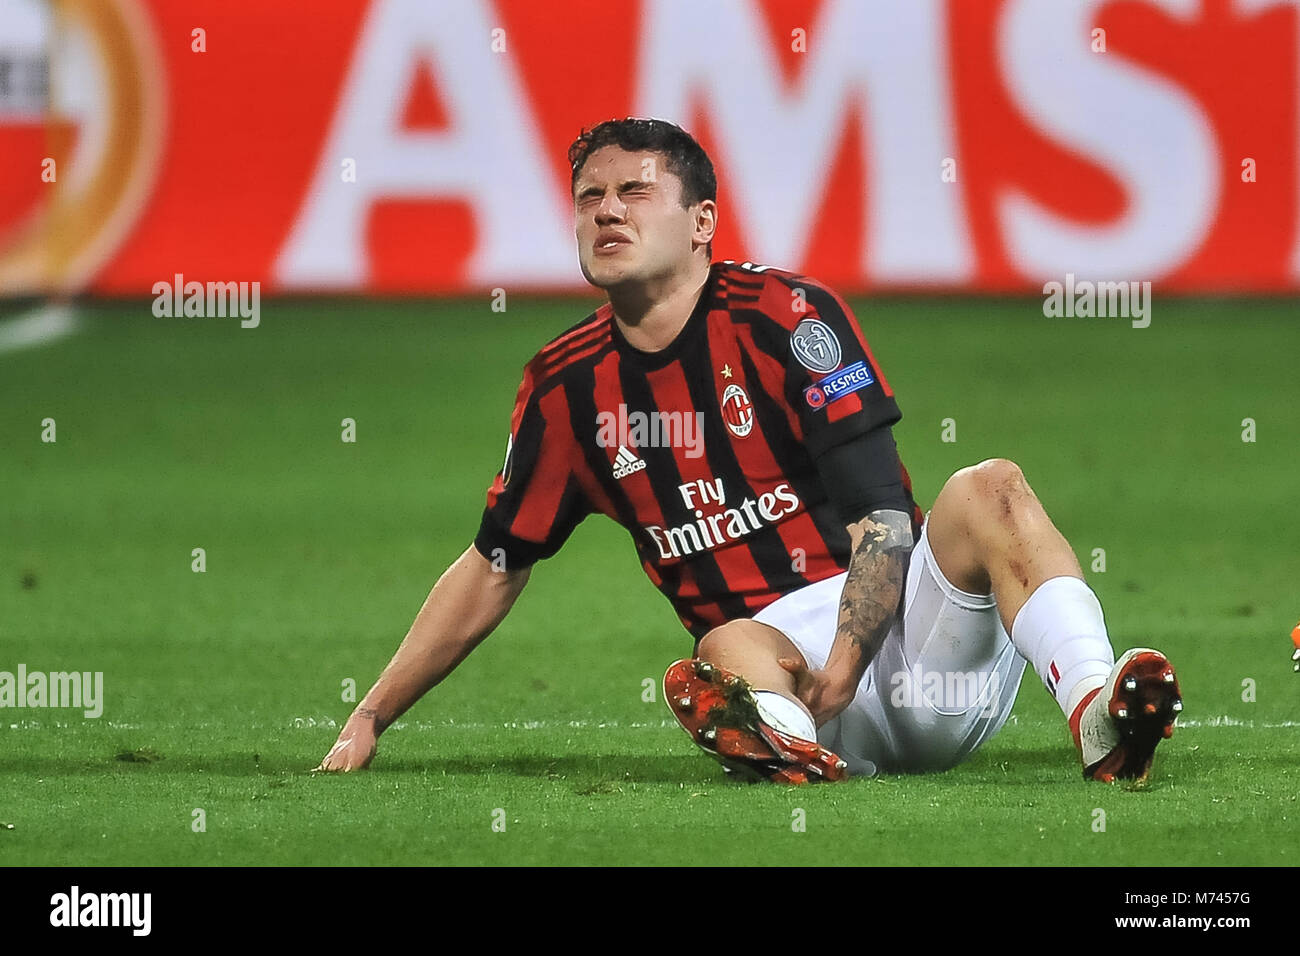 Milan, Italy. 8th March, 2018. Davide Calabria (AC Milan) during the match UEFA Europa League between AC Milan and Stock Photo